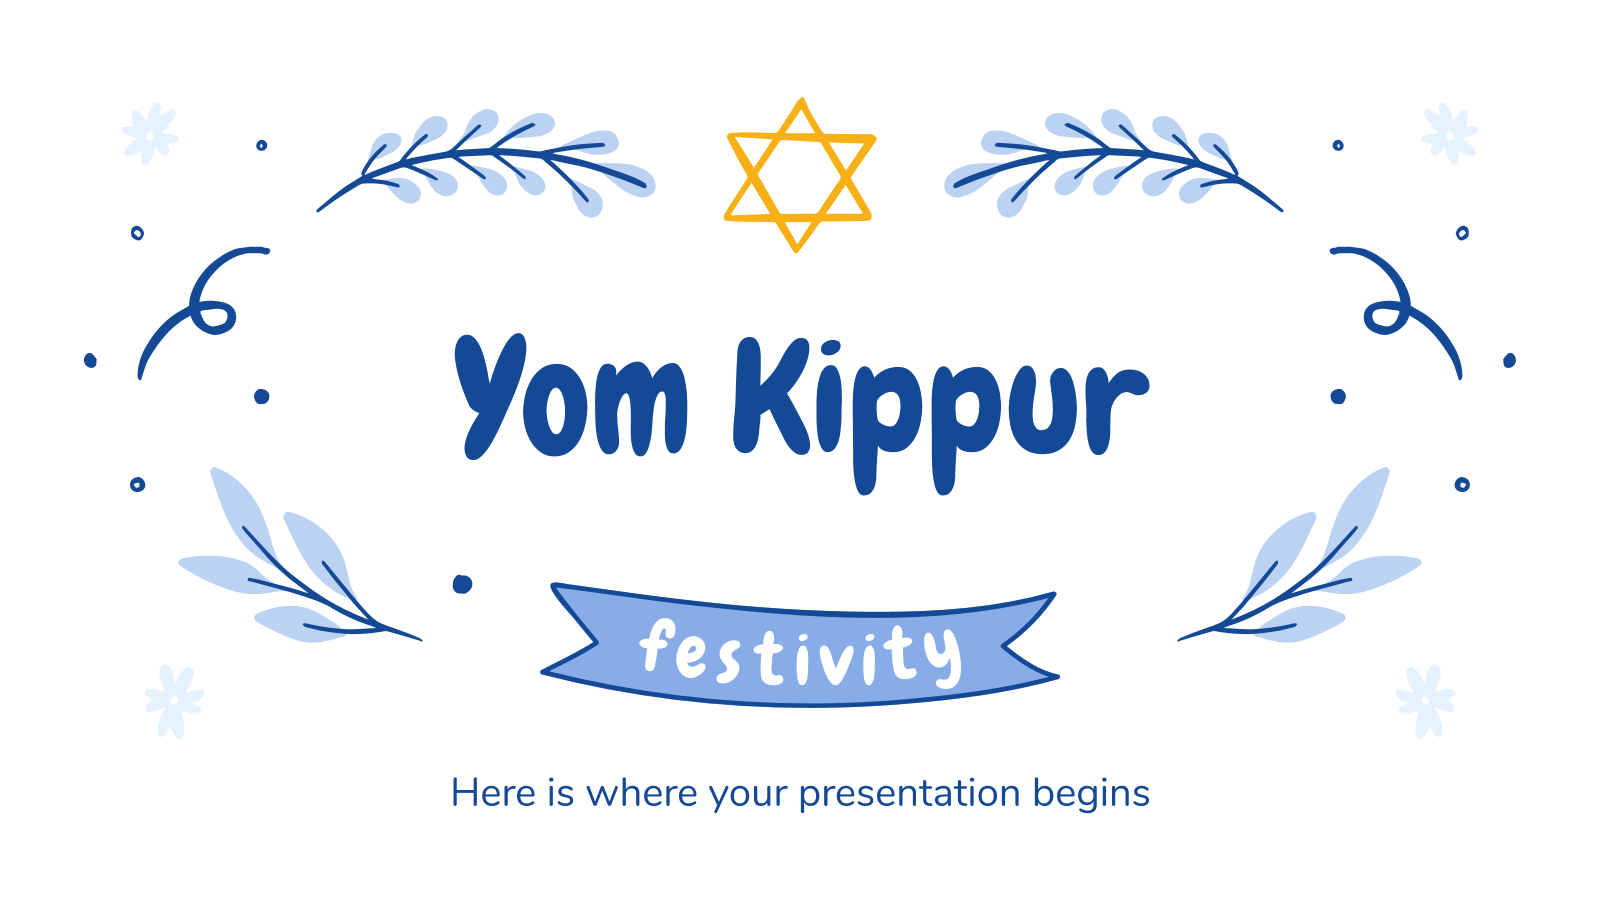 Yom Kippur Festivity presentation template